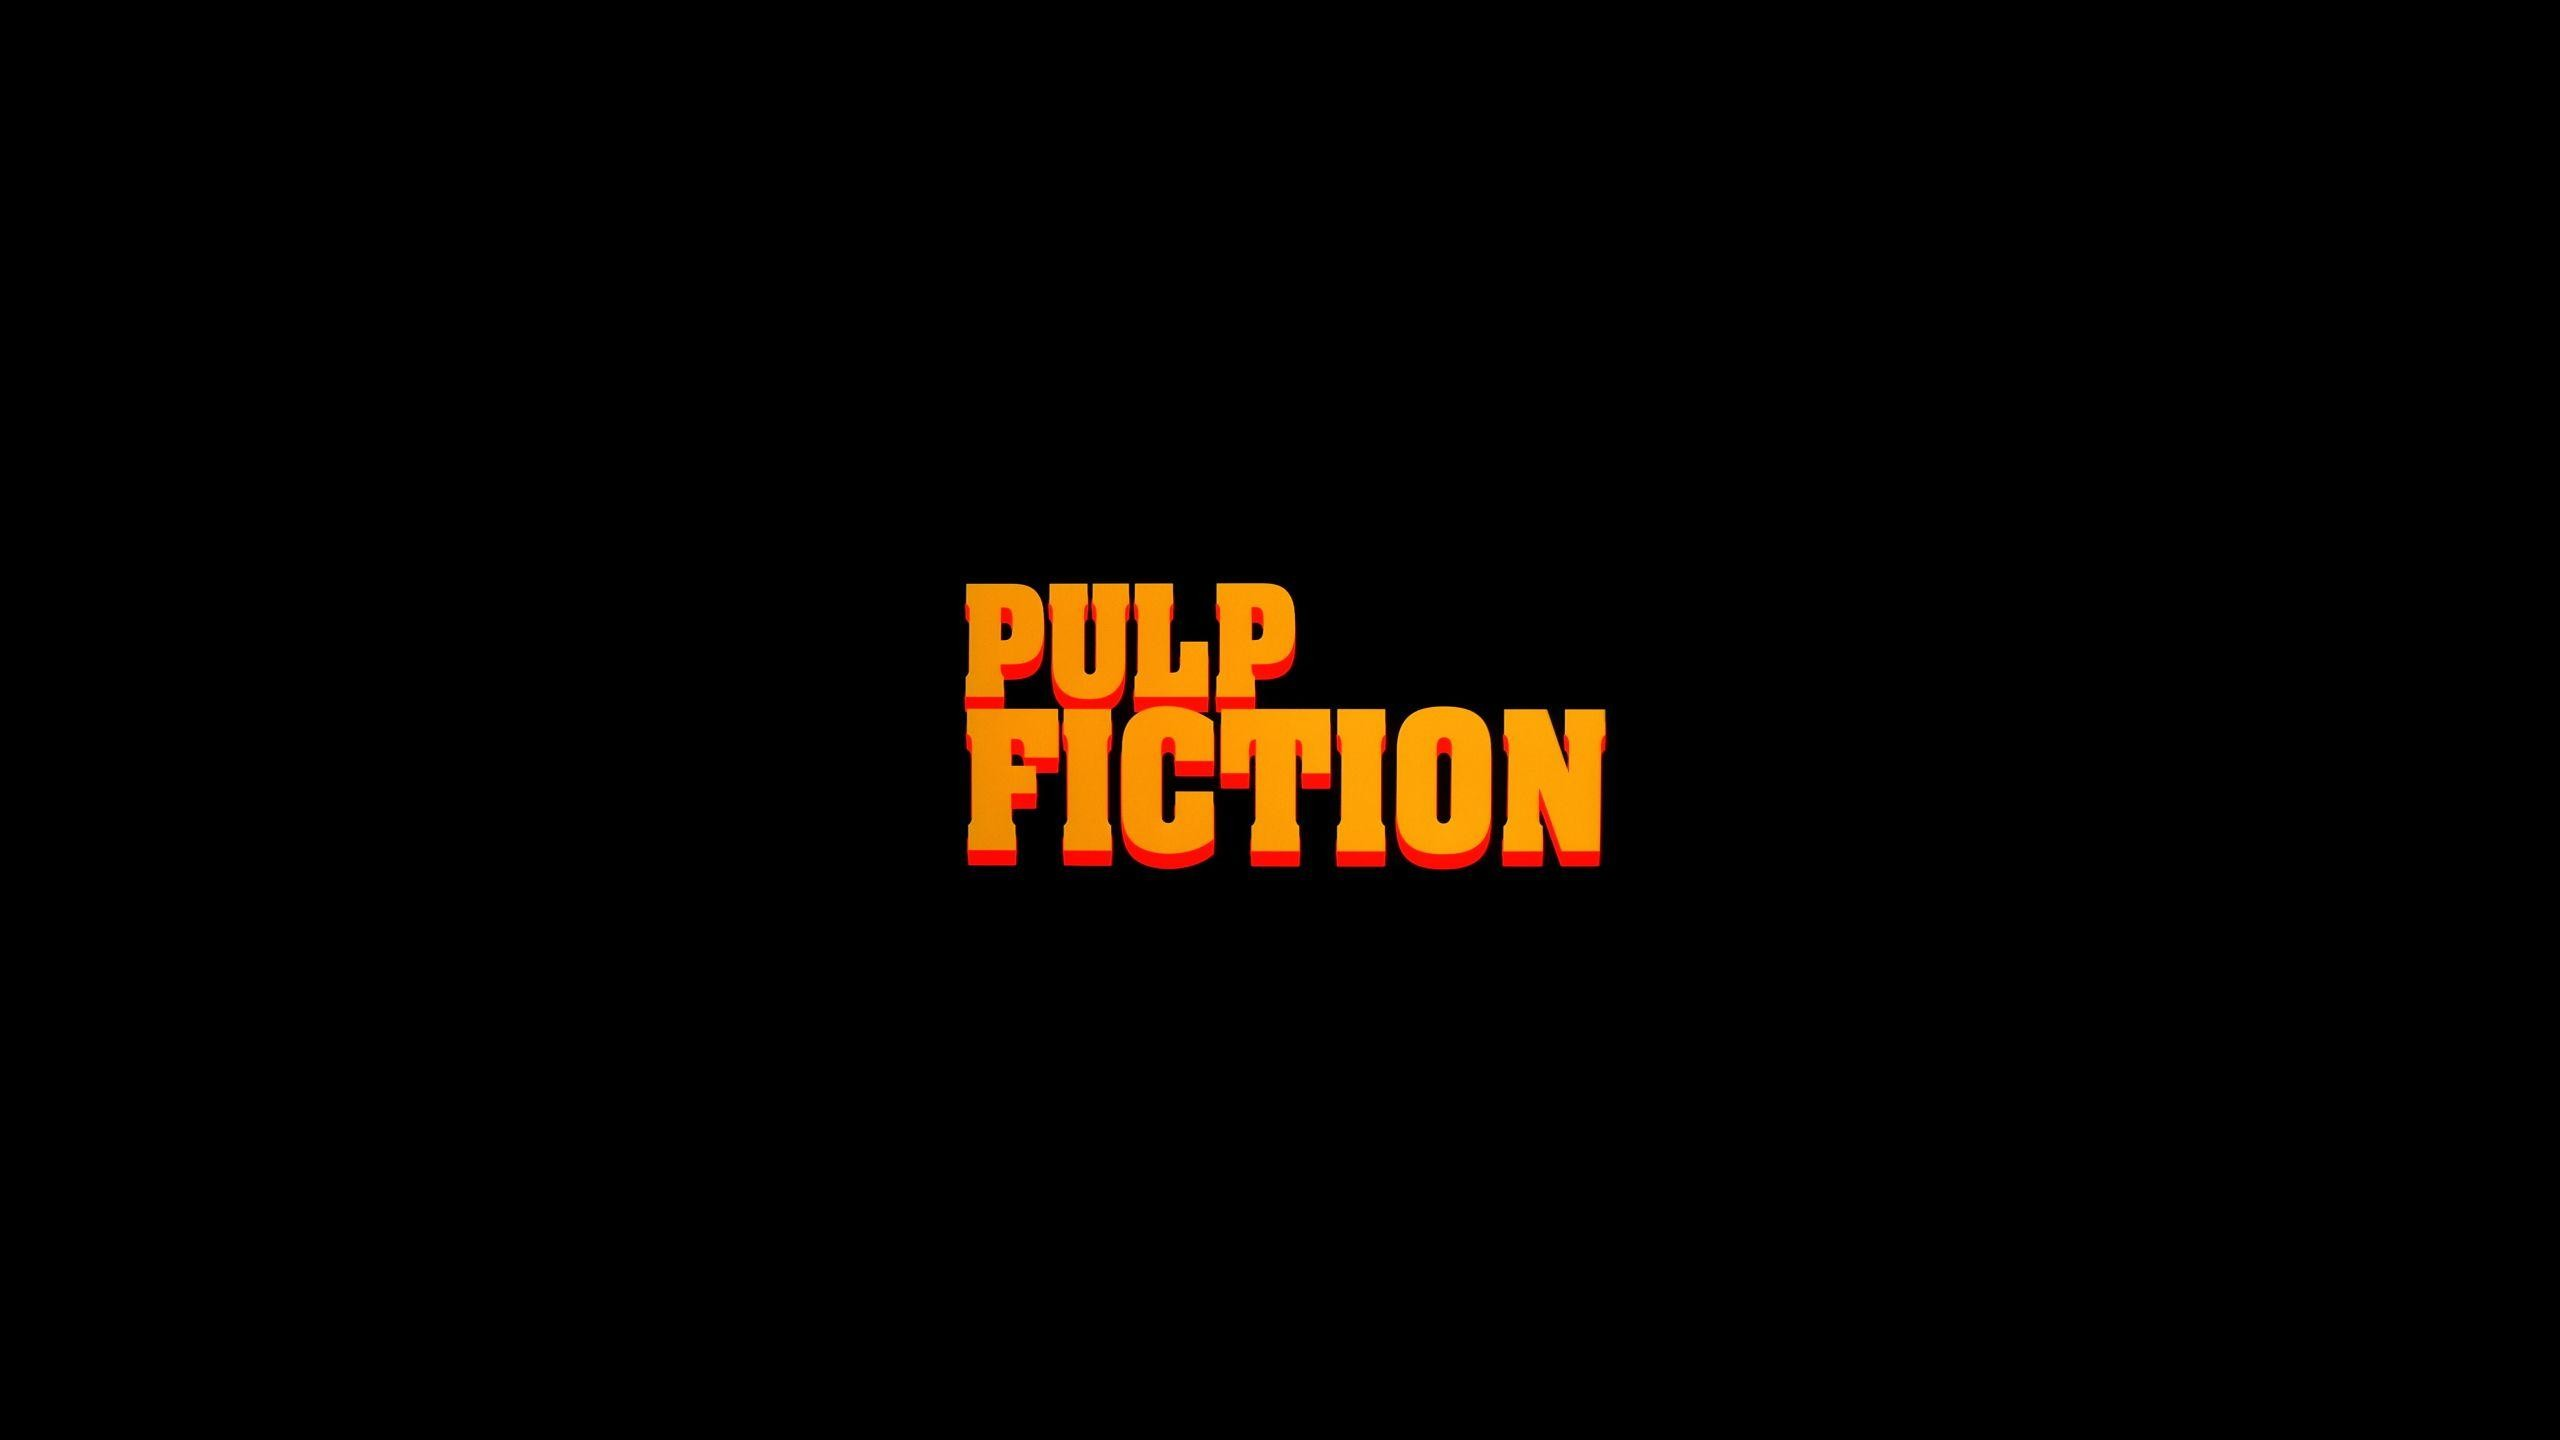 Star wars pulp fiction wallpaper 57 images - Star wars quotes wallpaper ...